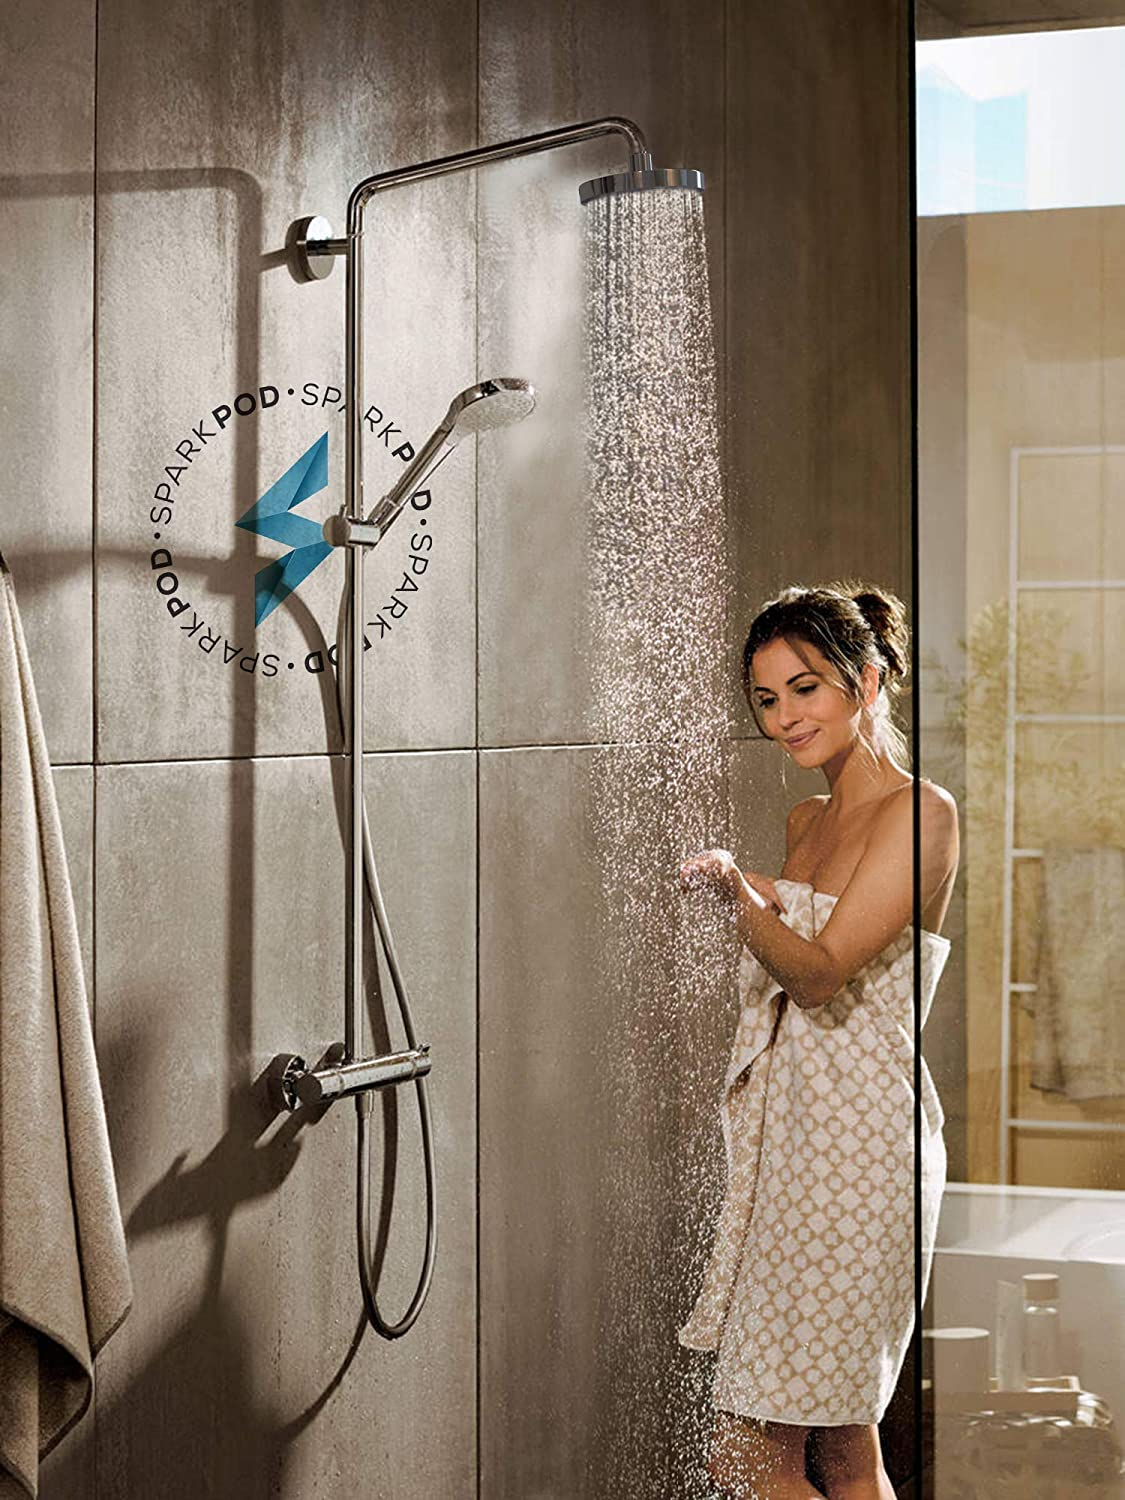 High Pressure Rain Luxury Modern Look SparkPod Shower Head The Perfect Adjustable /& Heavy Duty Universal Replacement for Your Bathroom Shower Heads Easy Tool Free Installation